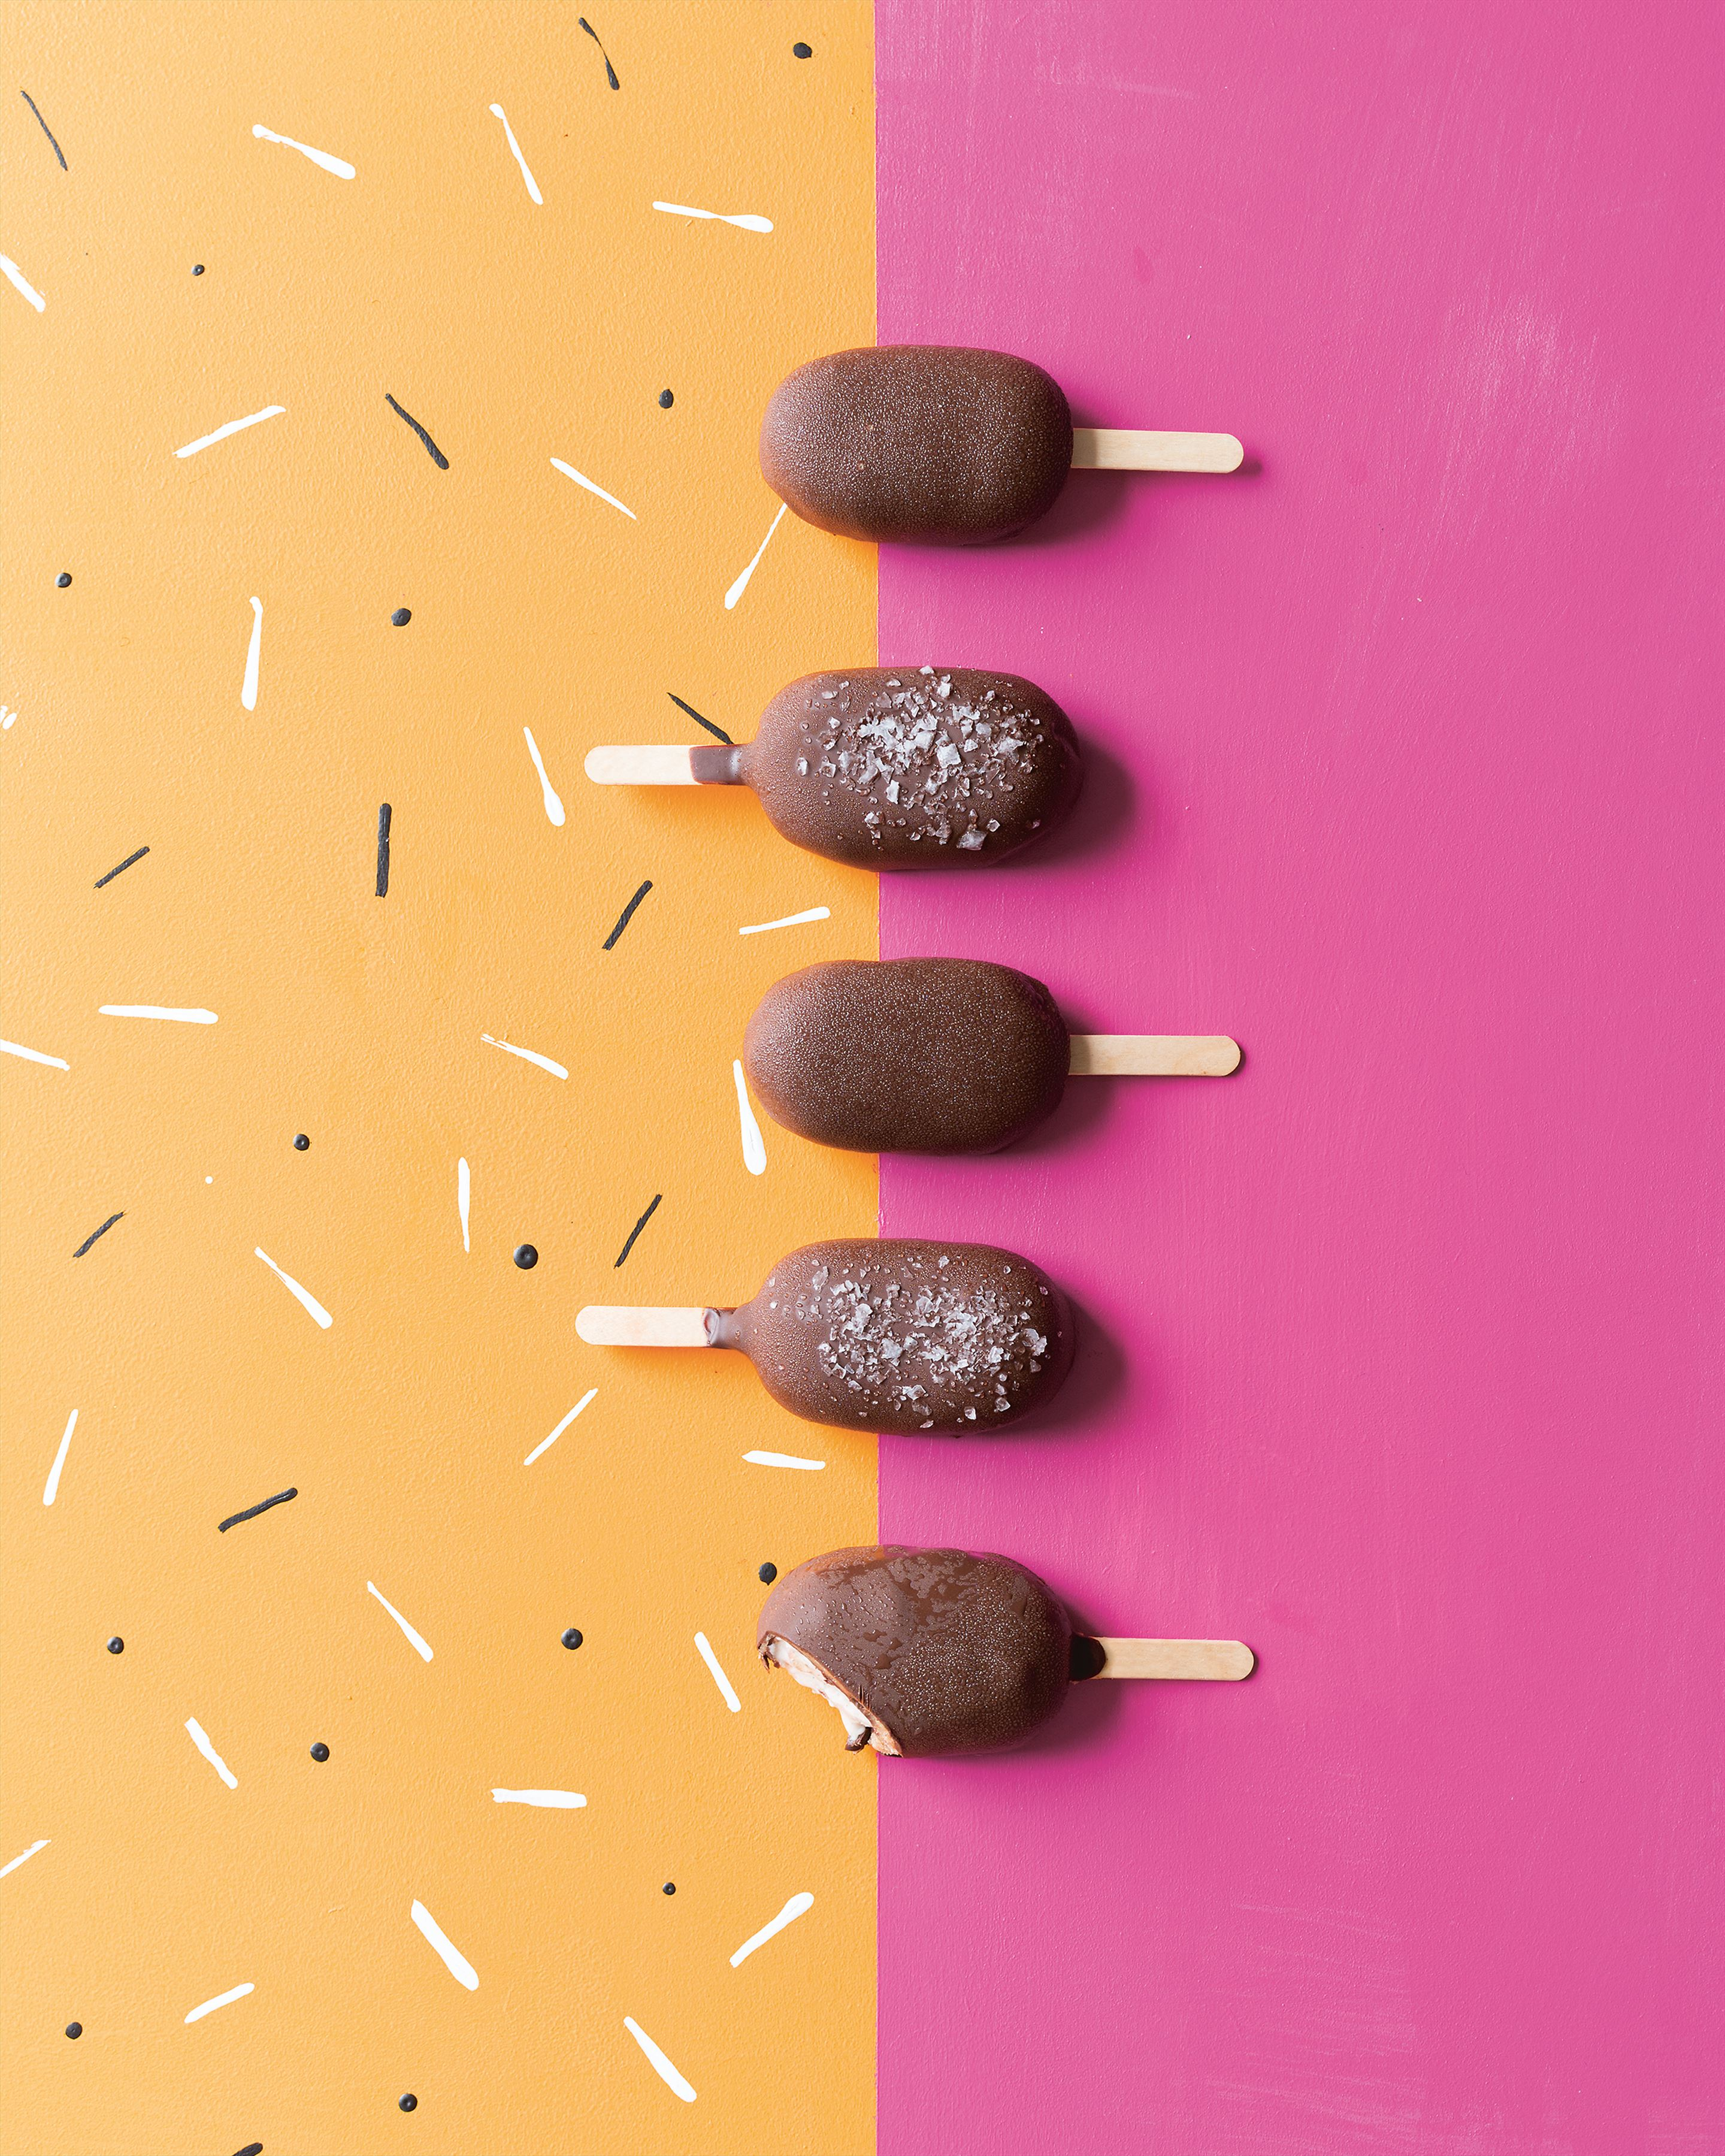 Double chocolate salted caramel nice-cream lollies